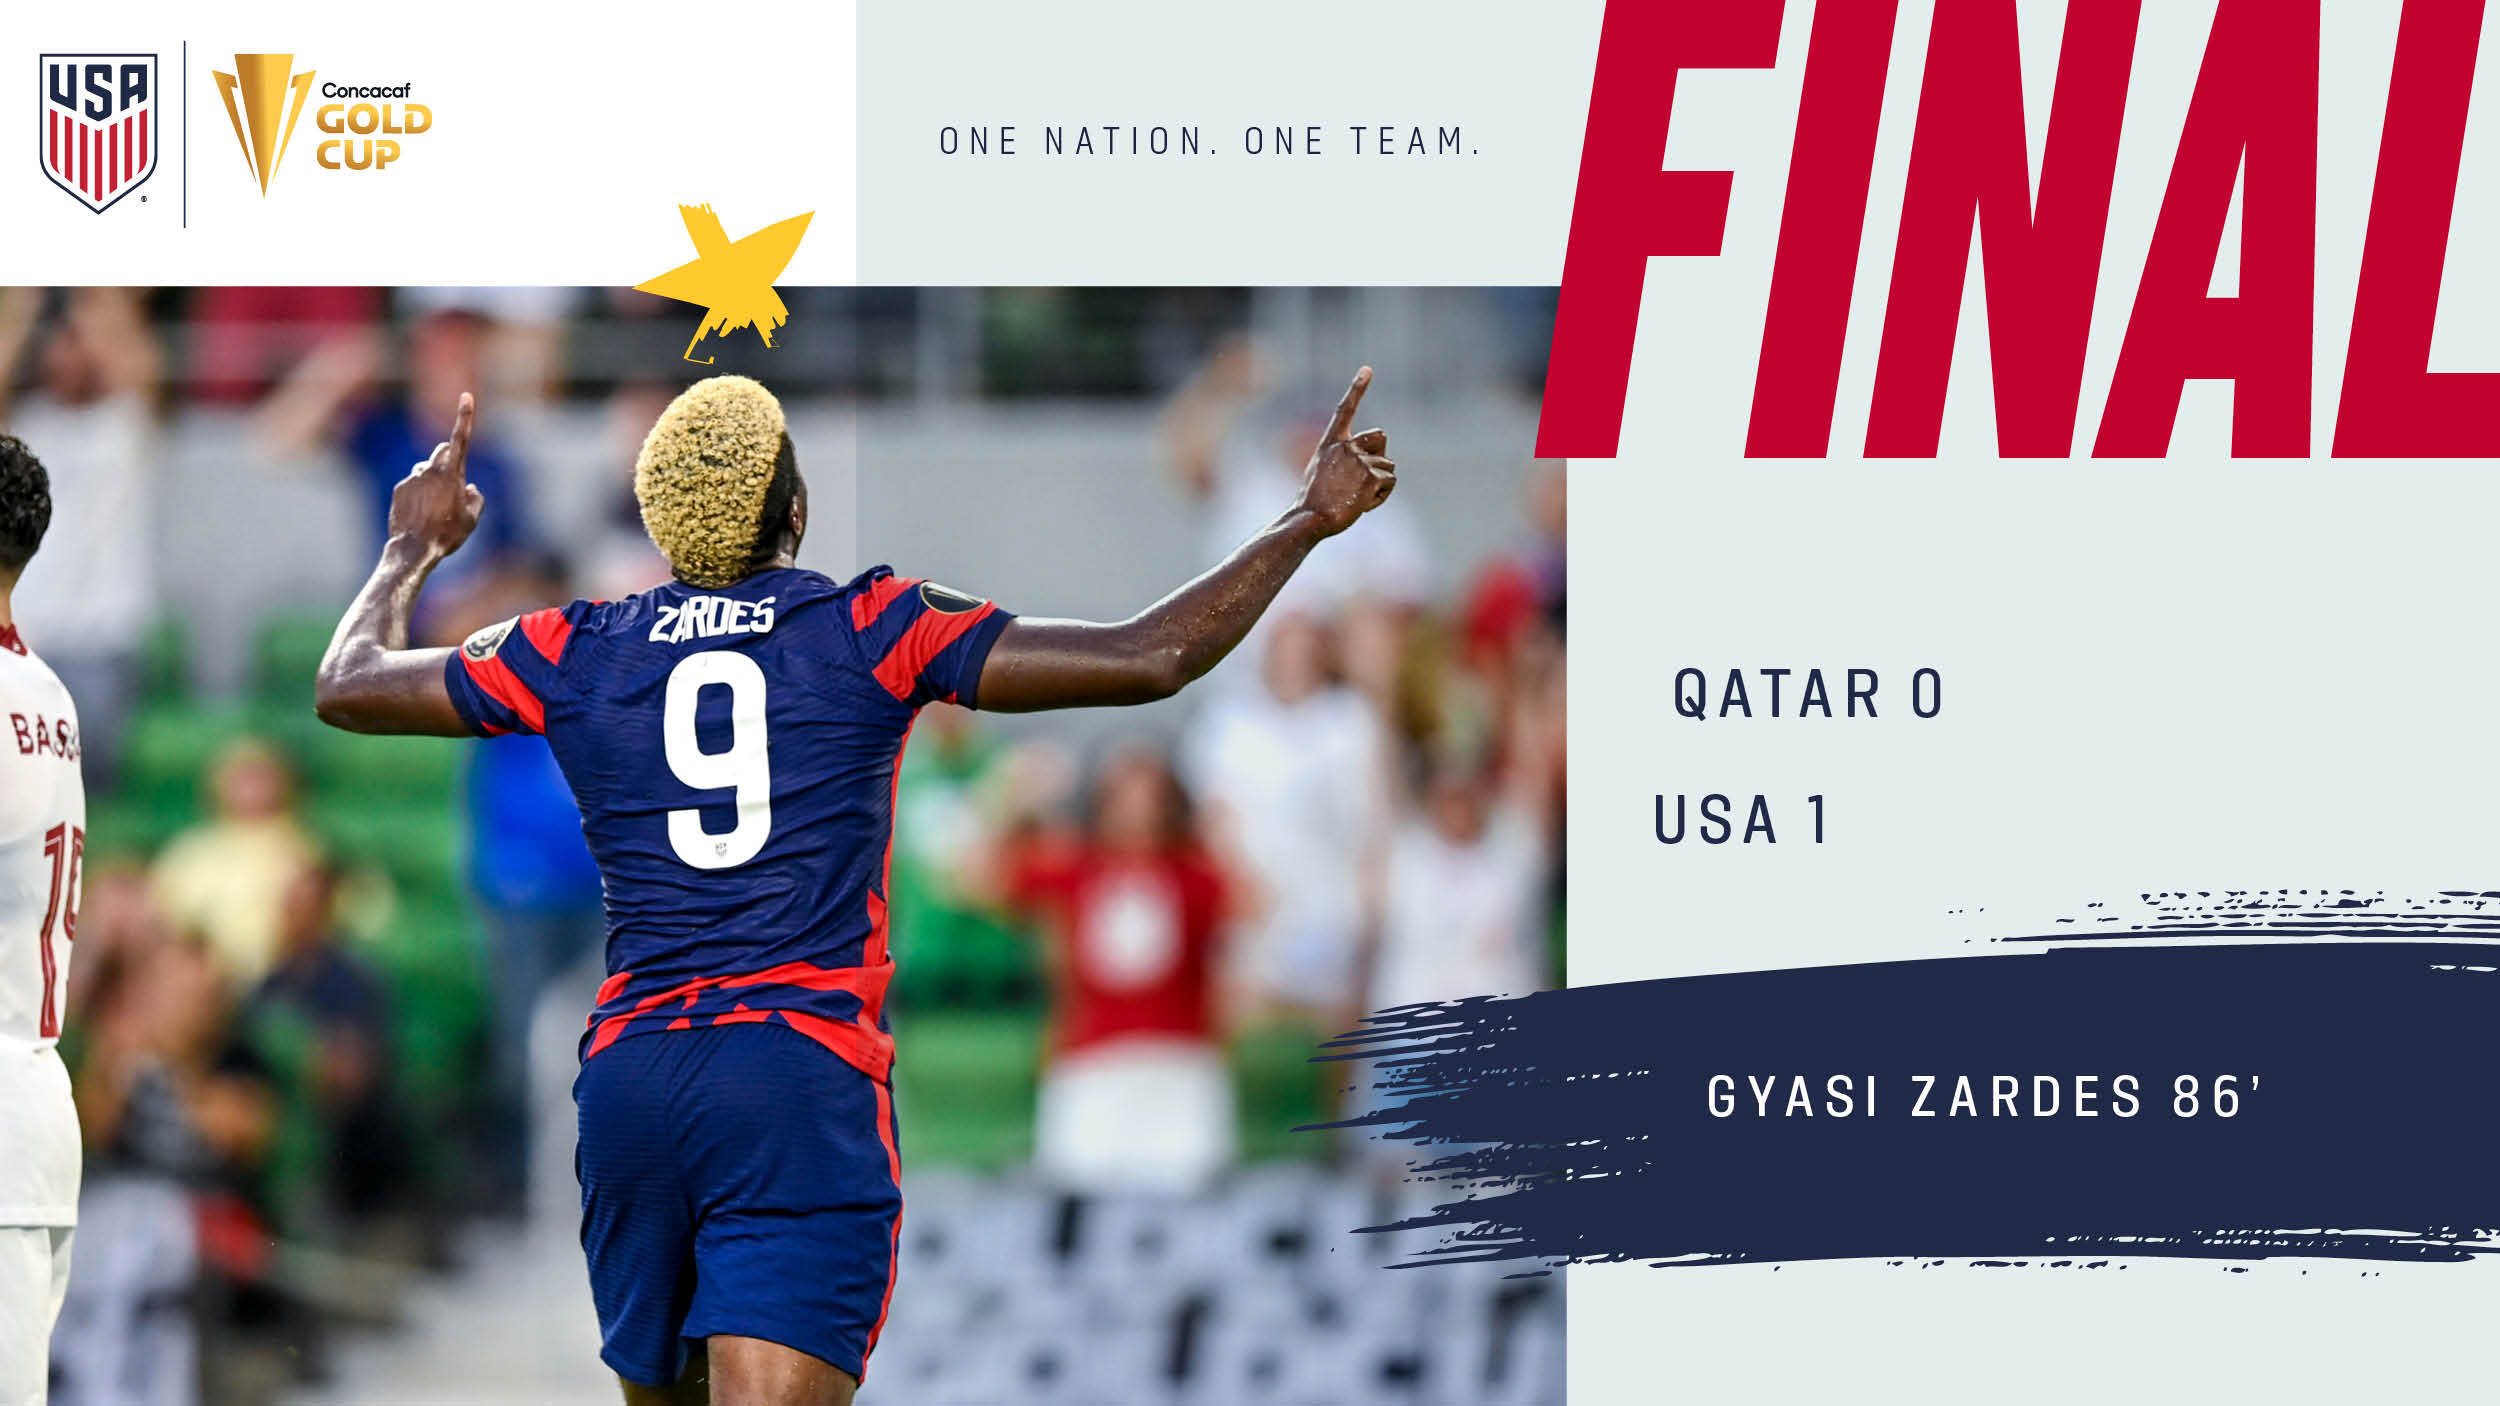 2021 Concacaf Gold Cup Semifinal: USA 1 - Qatar 0   Match Report, Stats & Bracket